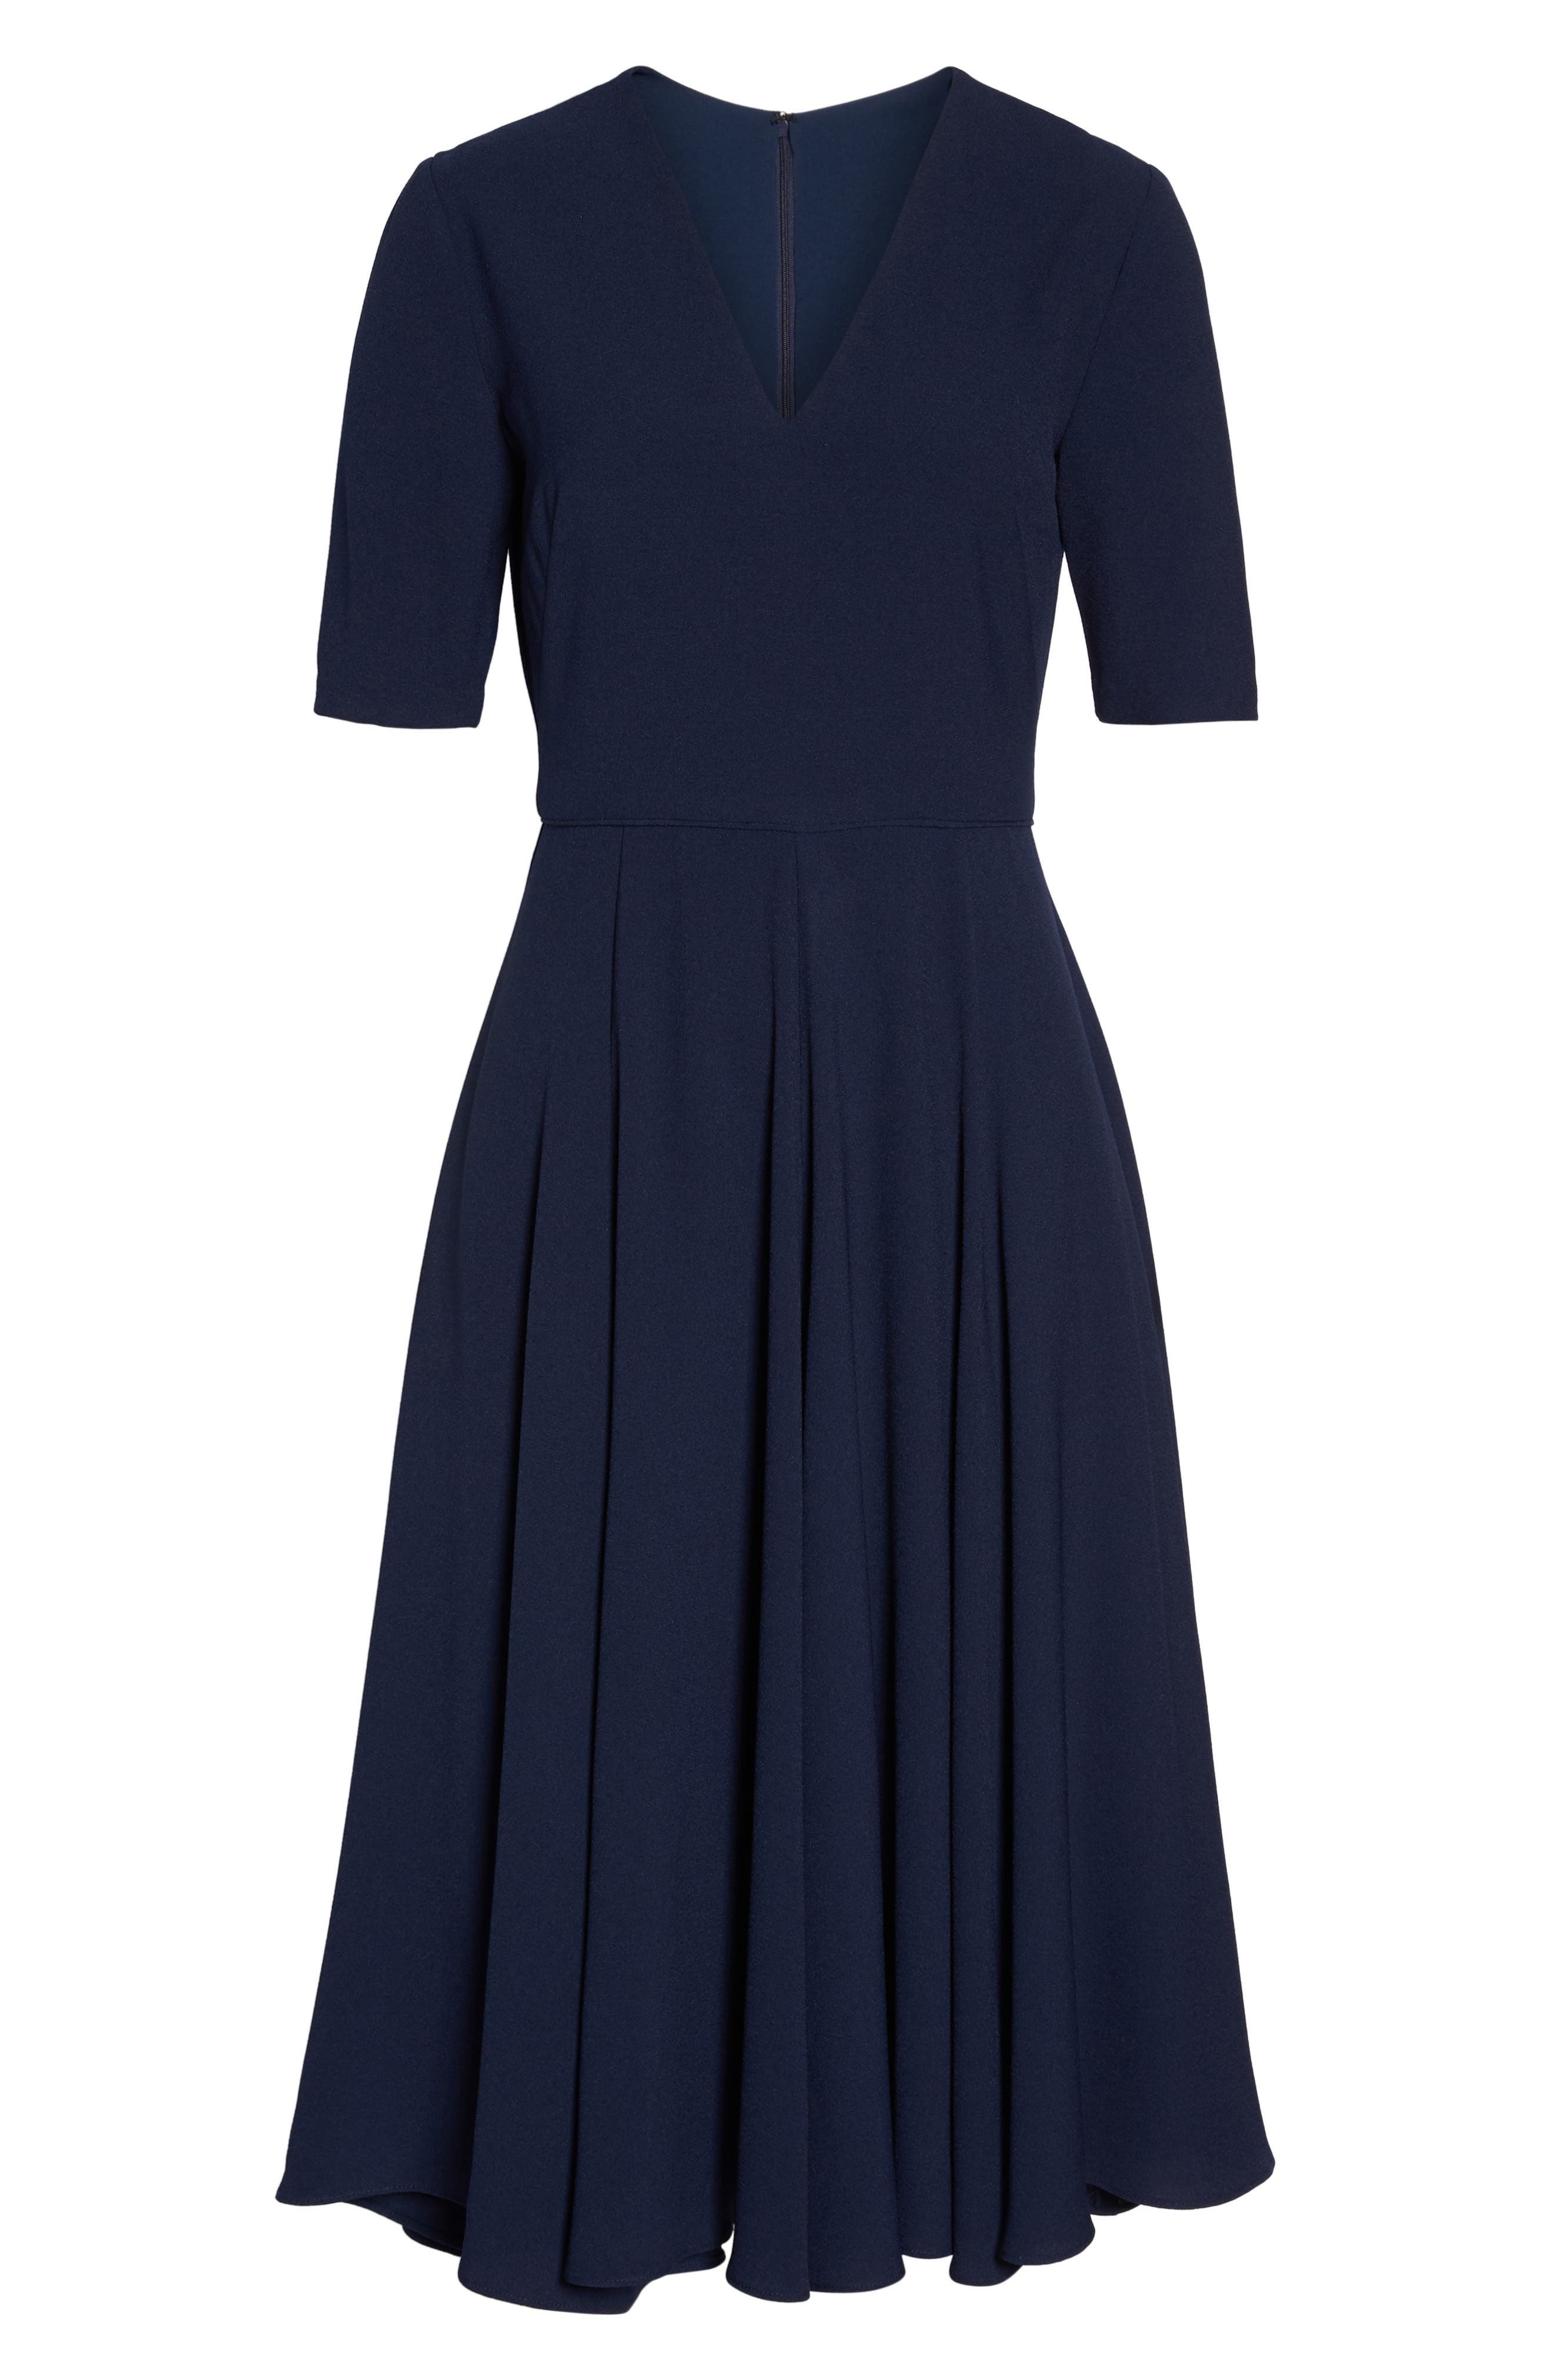 Edith City Crepe Fit & Flare Dress,                             Alternate thumbnail 7, color,                             NAVY